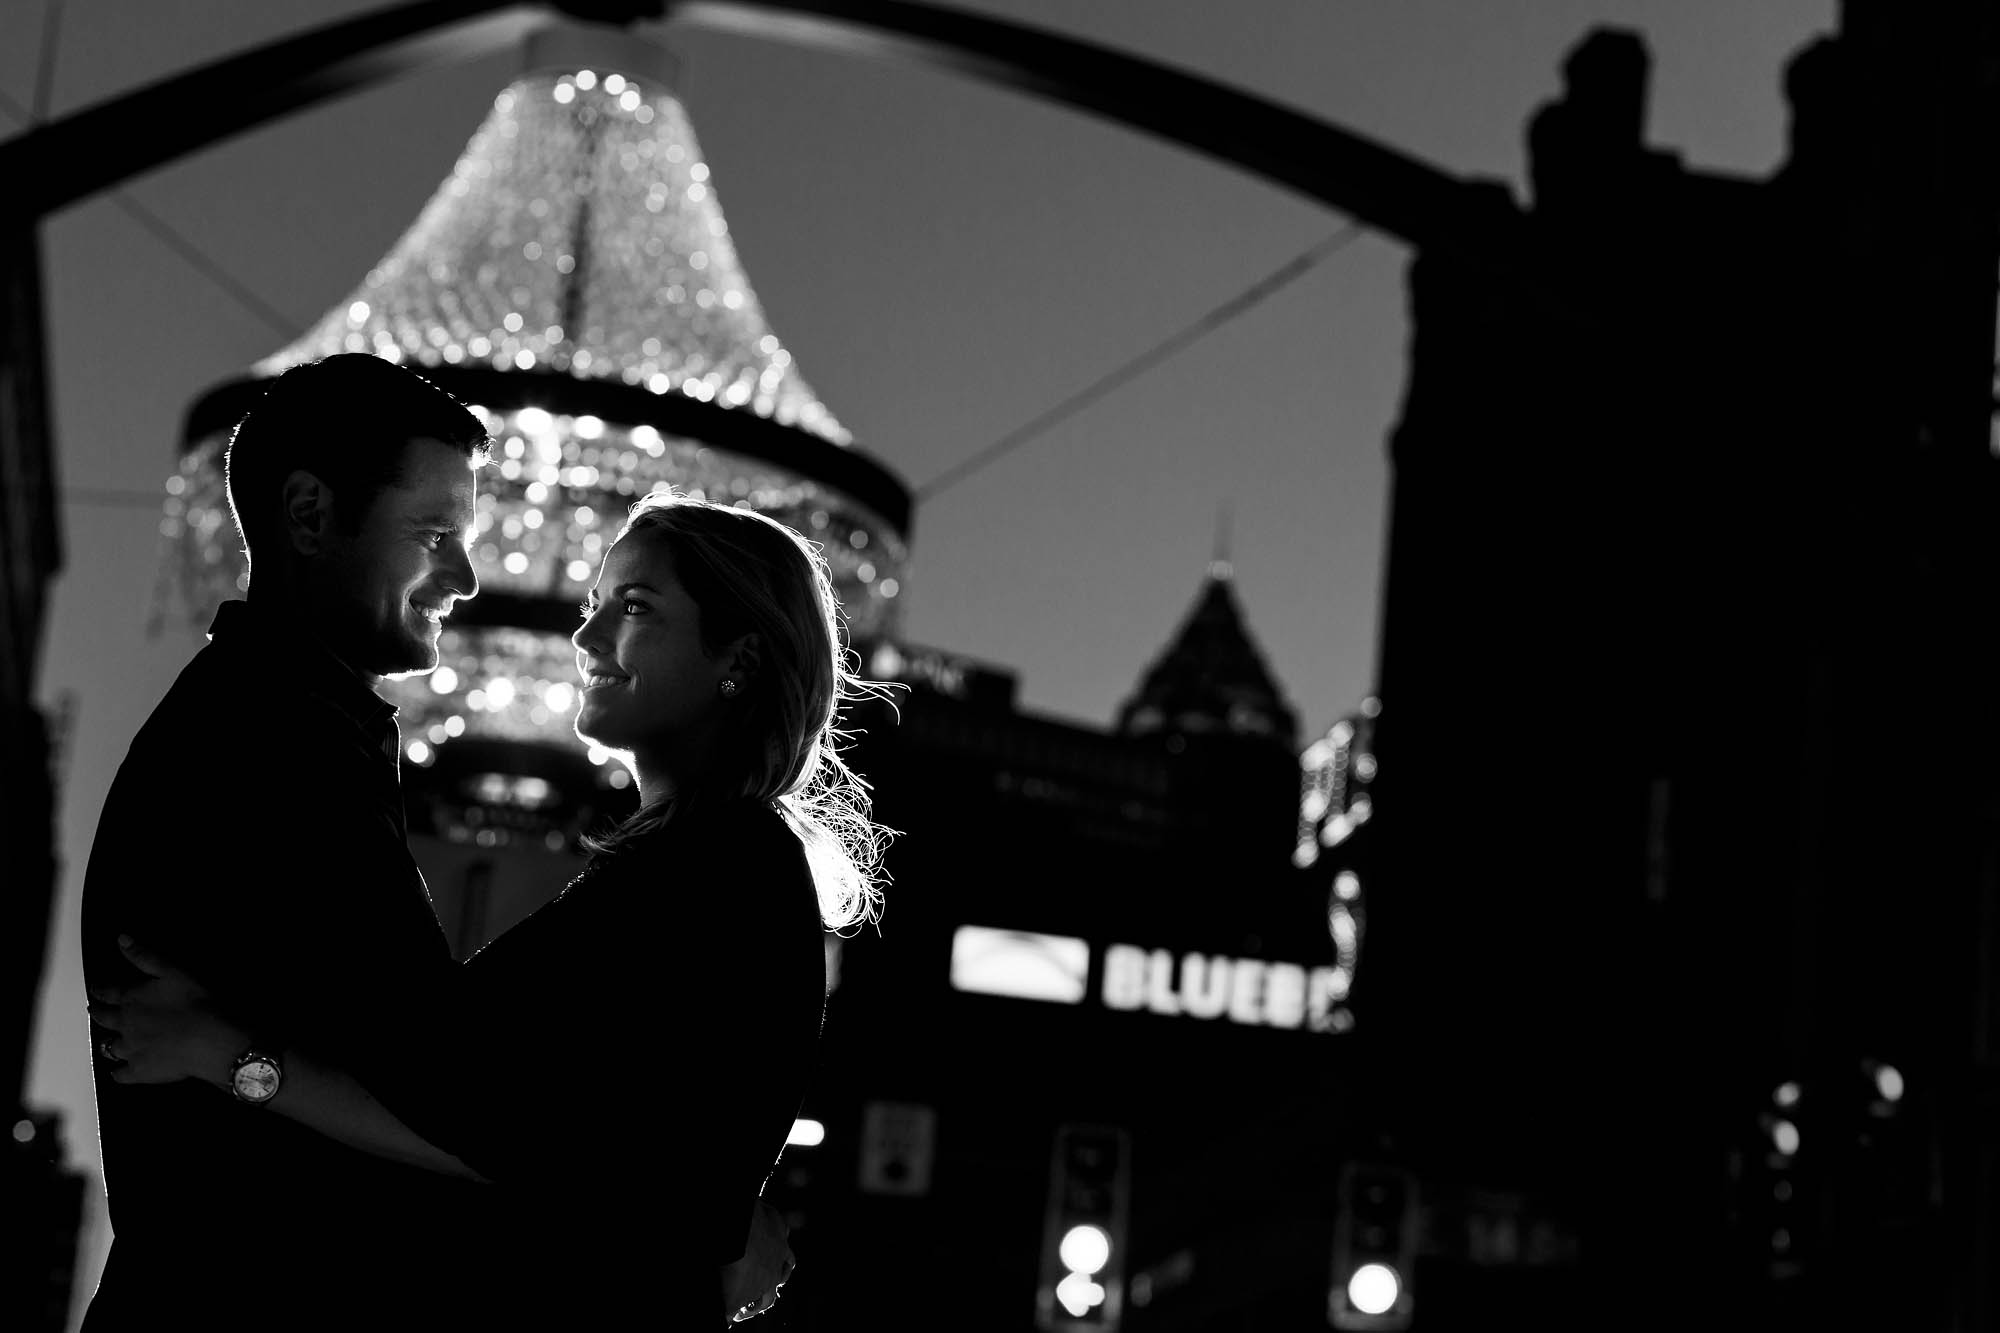 Engagement session by the Playhouse Square chandelier in Cleveland, Ohio.